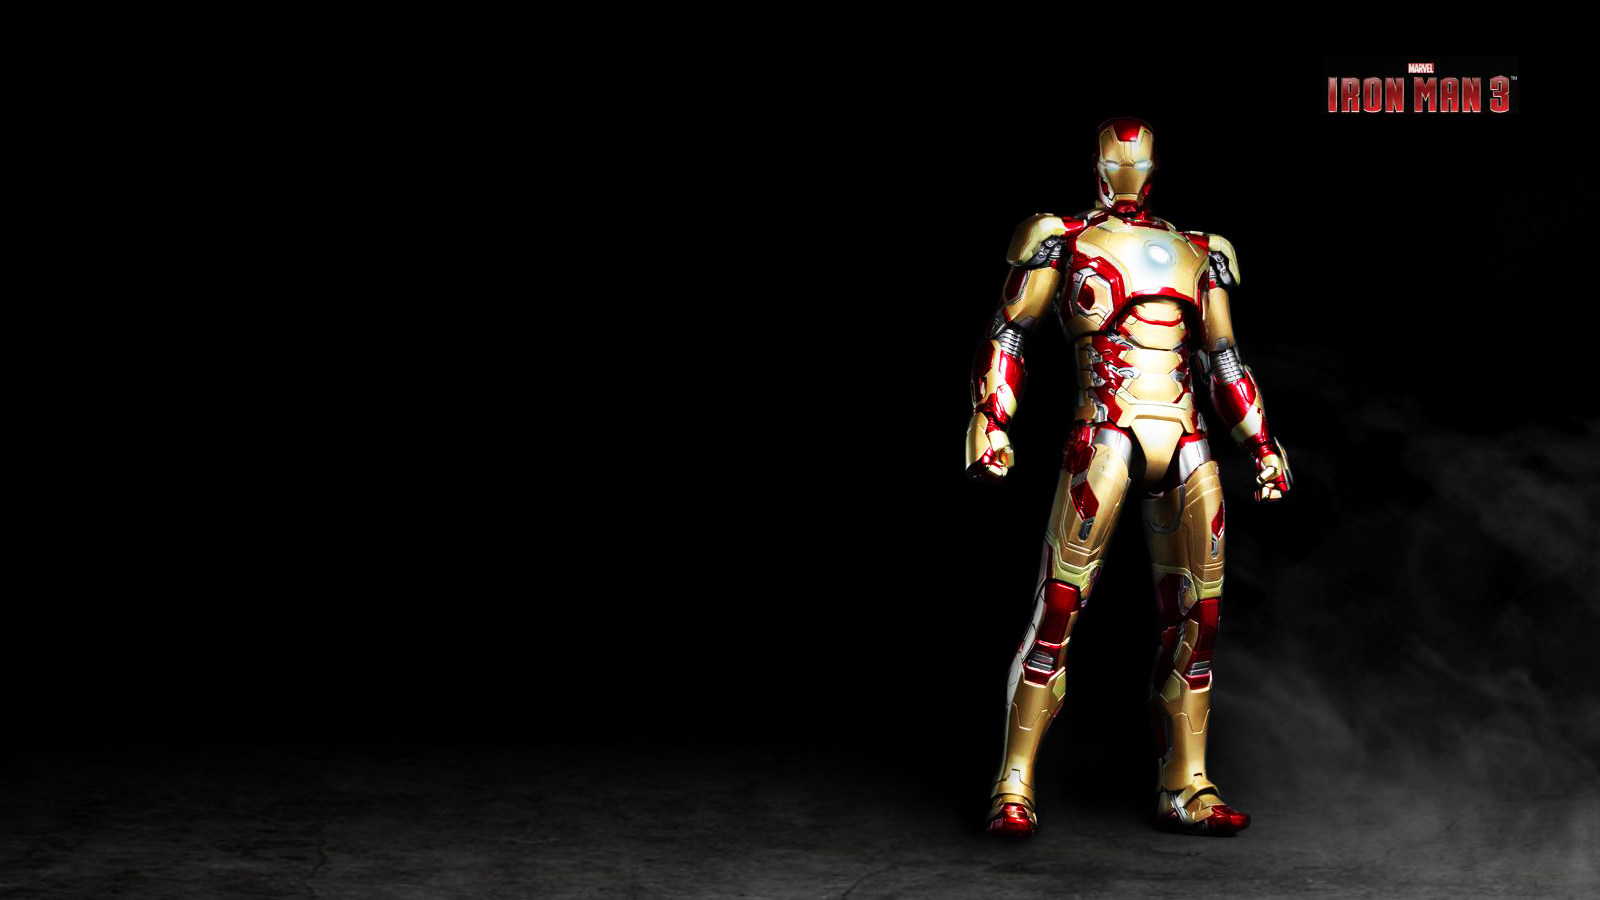 Iron Man Wallpaper HD Latest